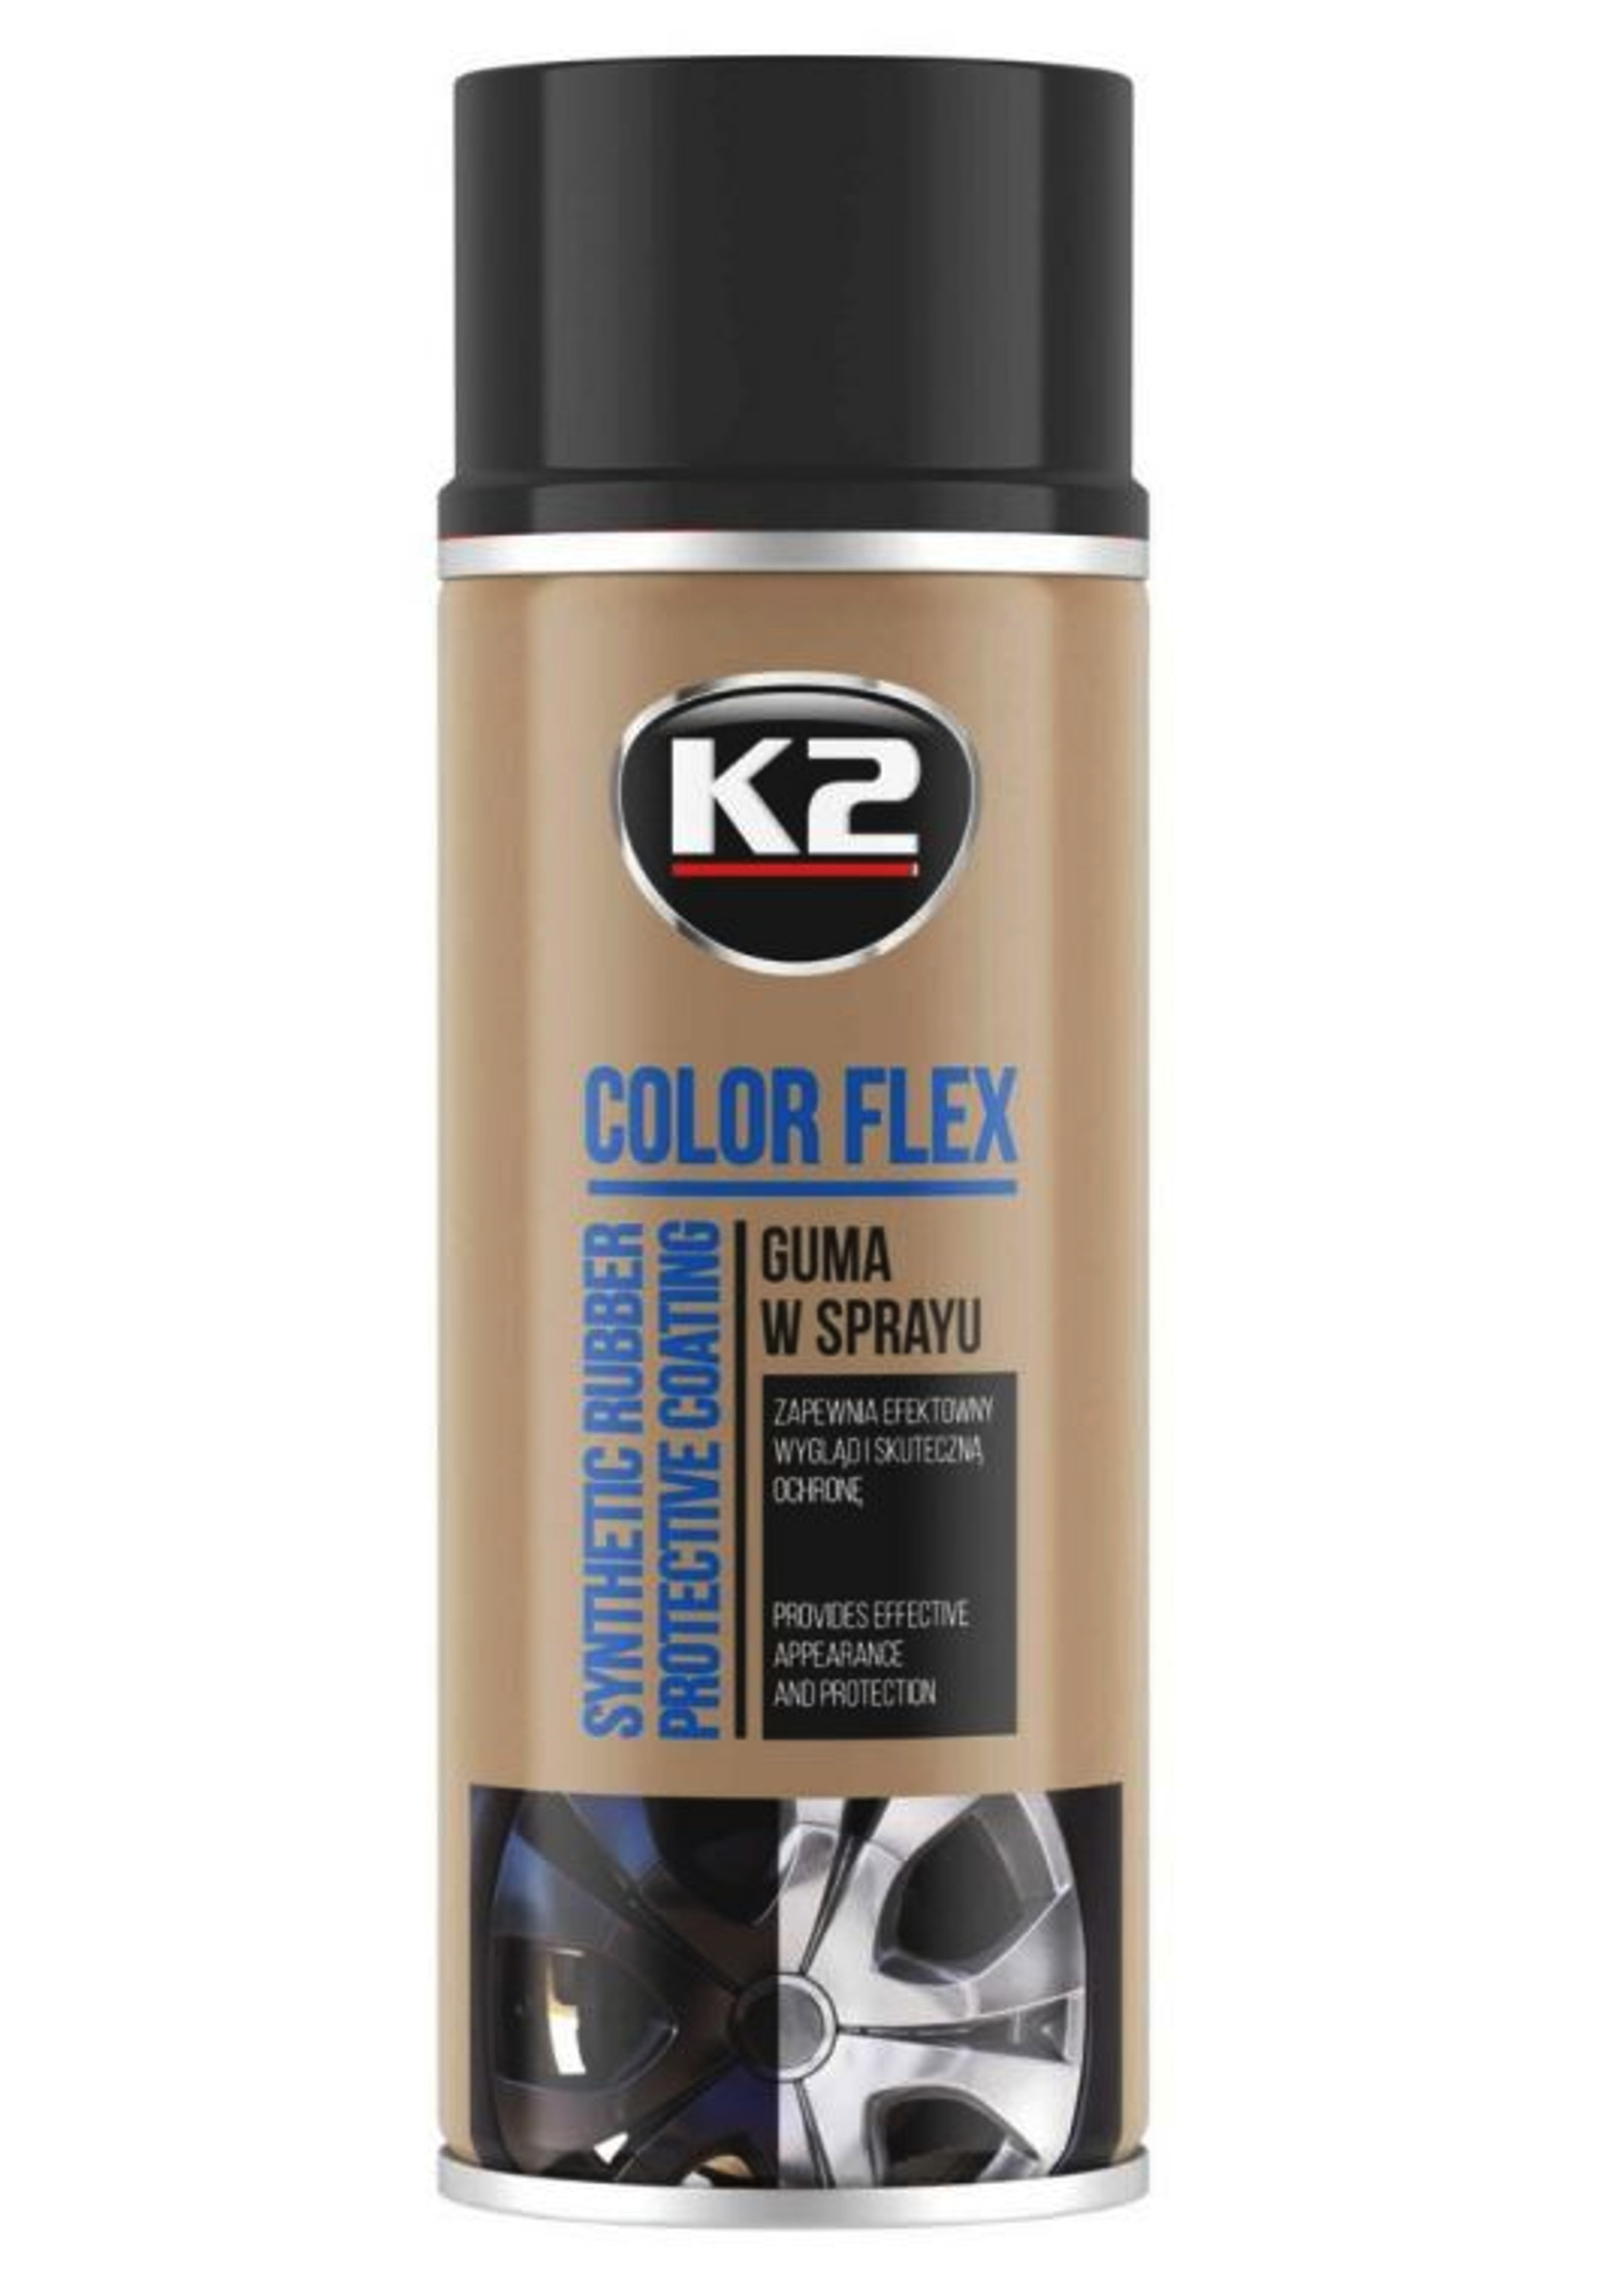 K2 Color Flex Czarny Mat 400ml Guma w Sprayu